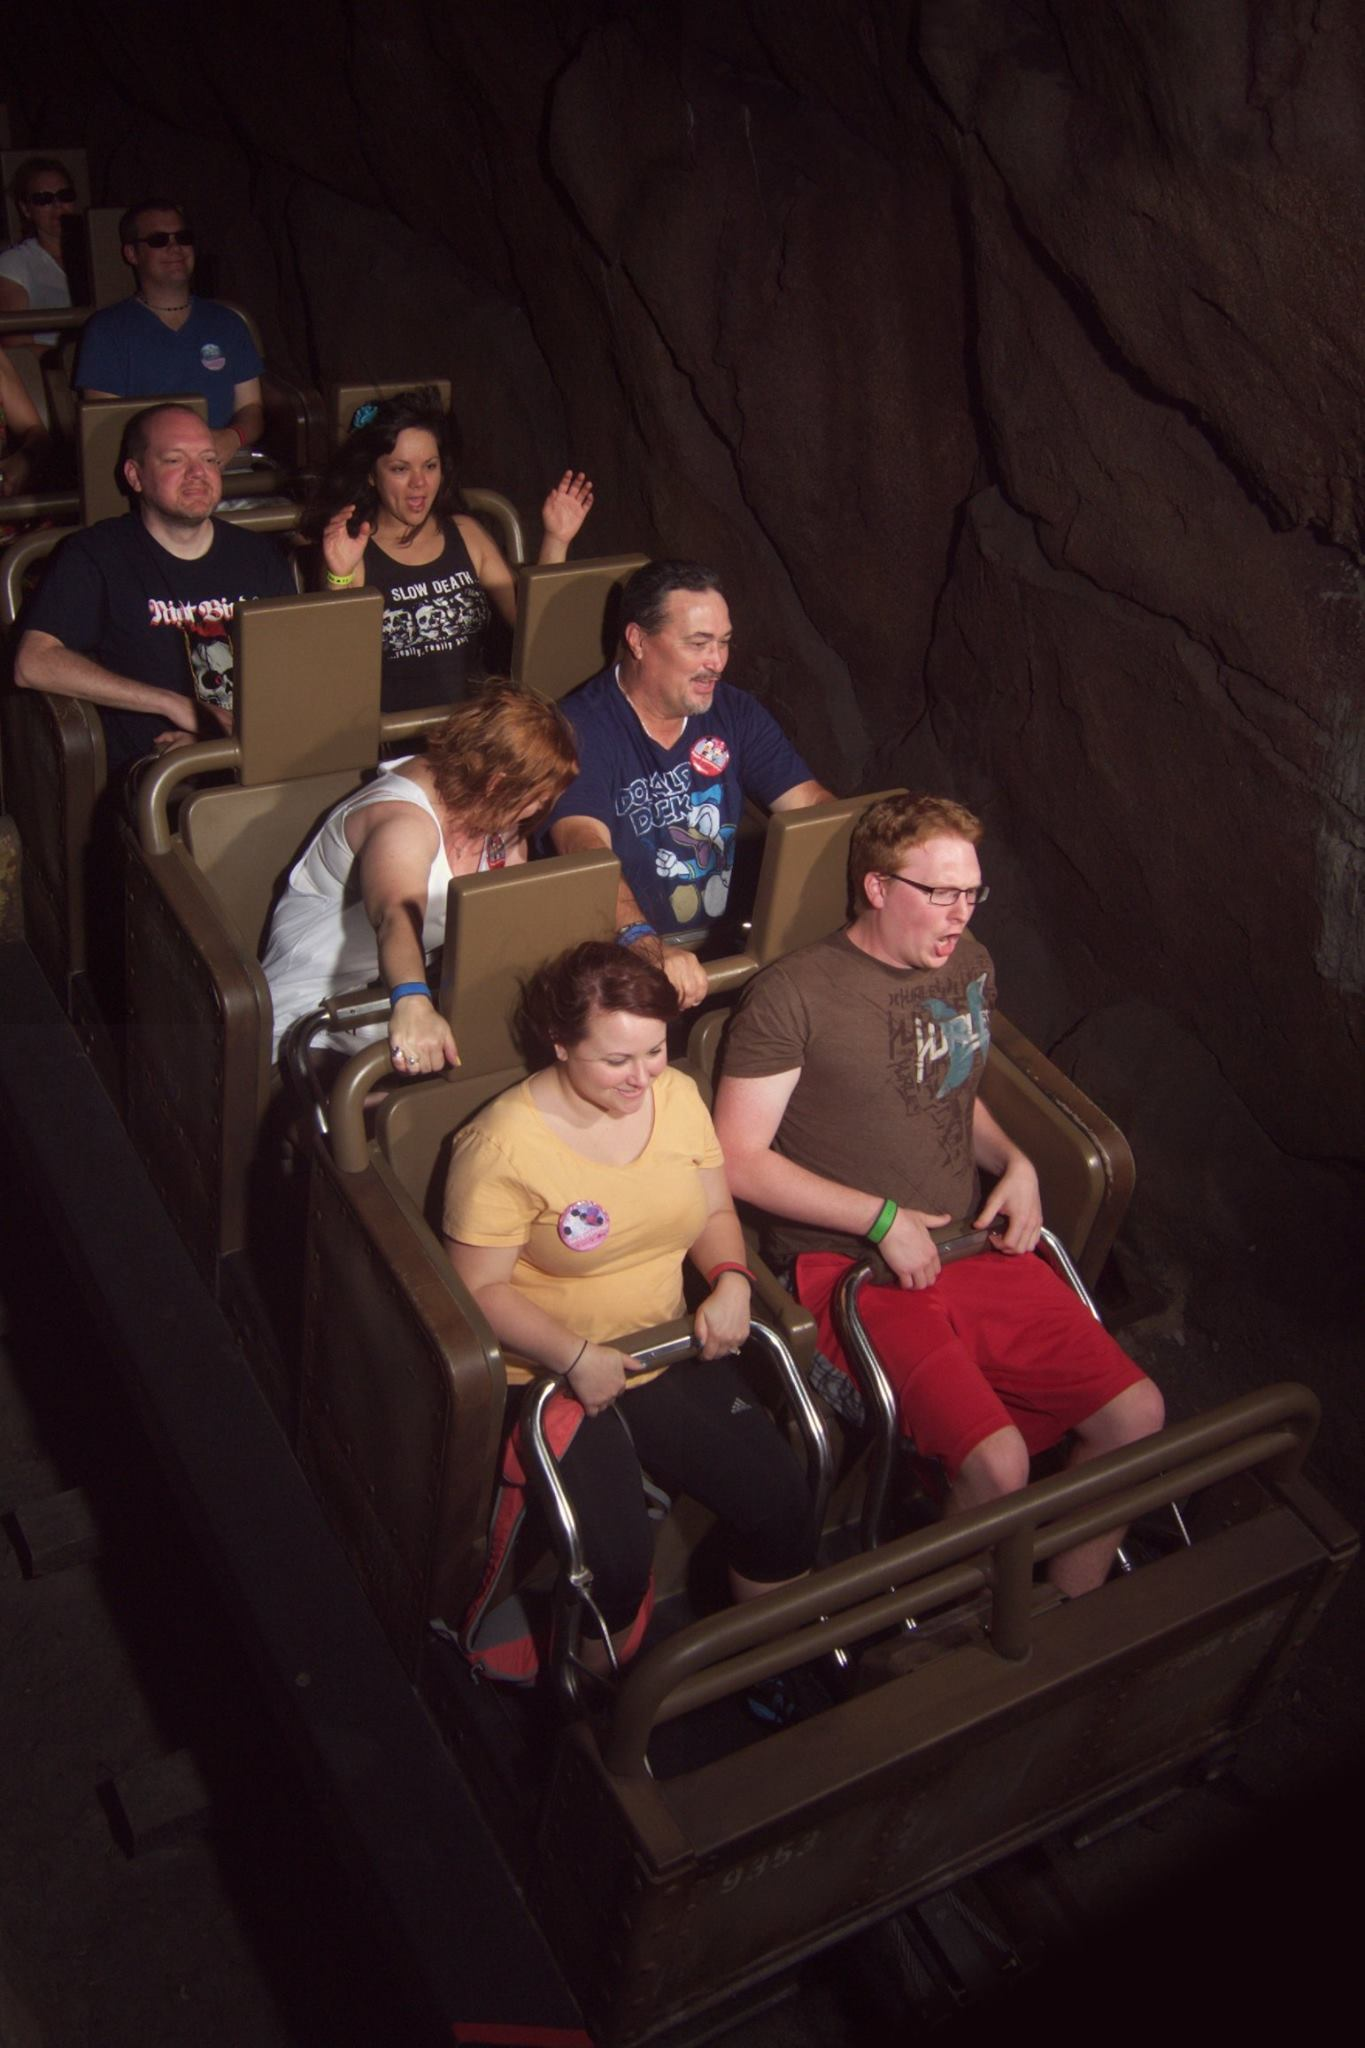 Terrific Tuesdays: Splash Mountain